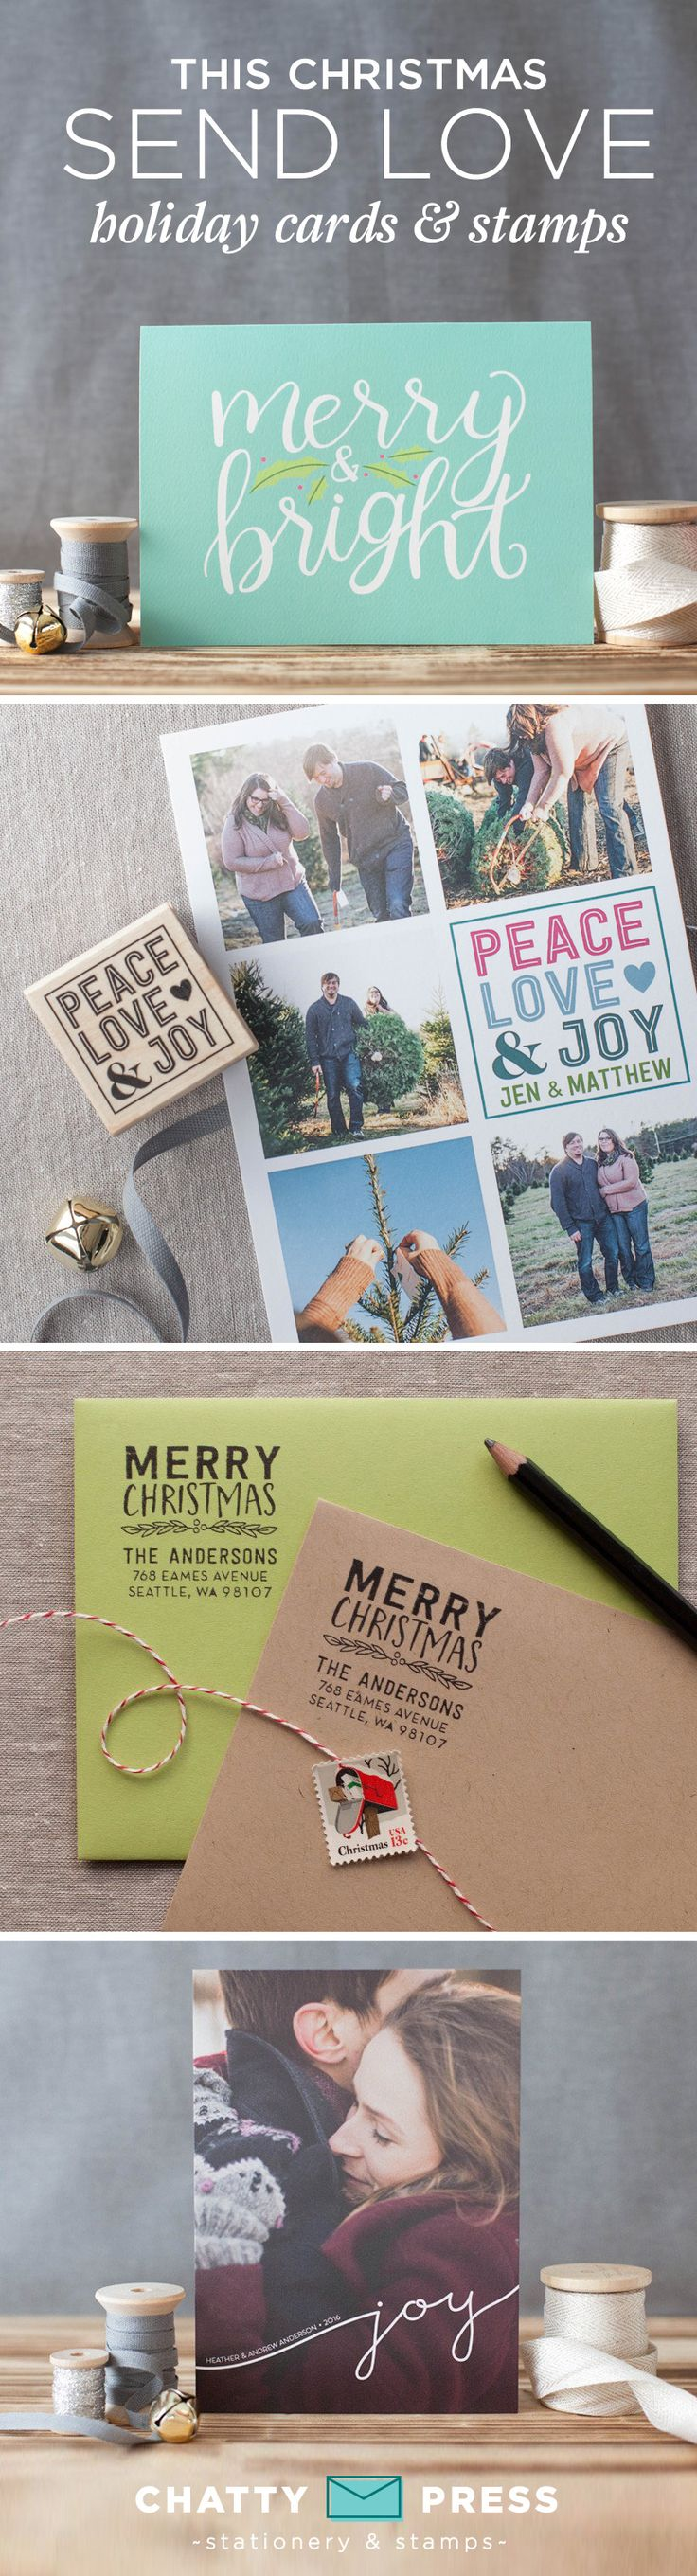 New for 2016! Modern Holiday photo cards and address stamps. Upload your photo and we'll design your card to send to family and friends near and far!